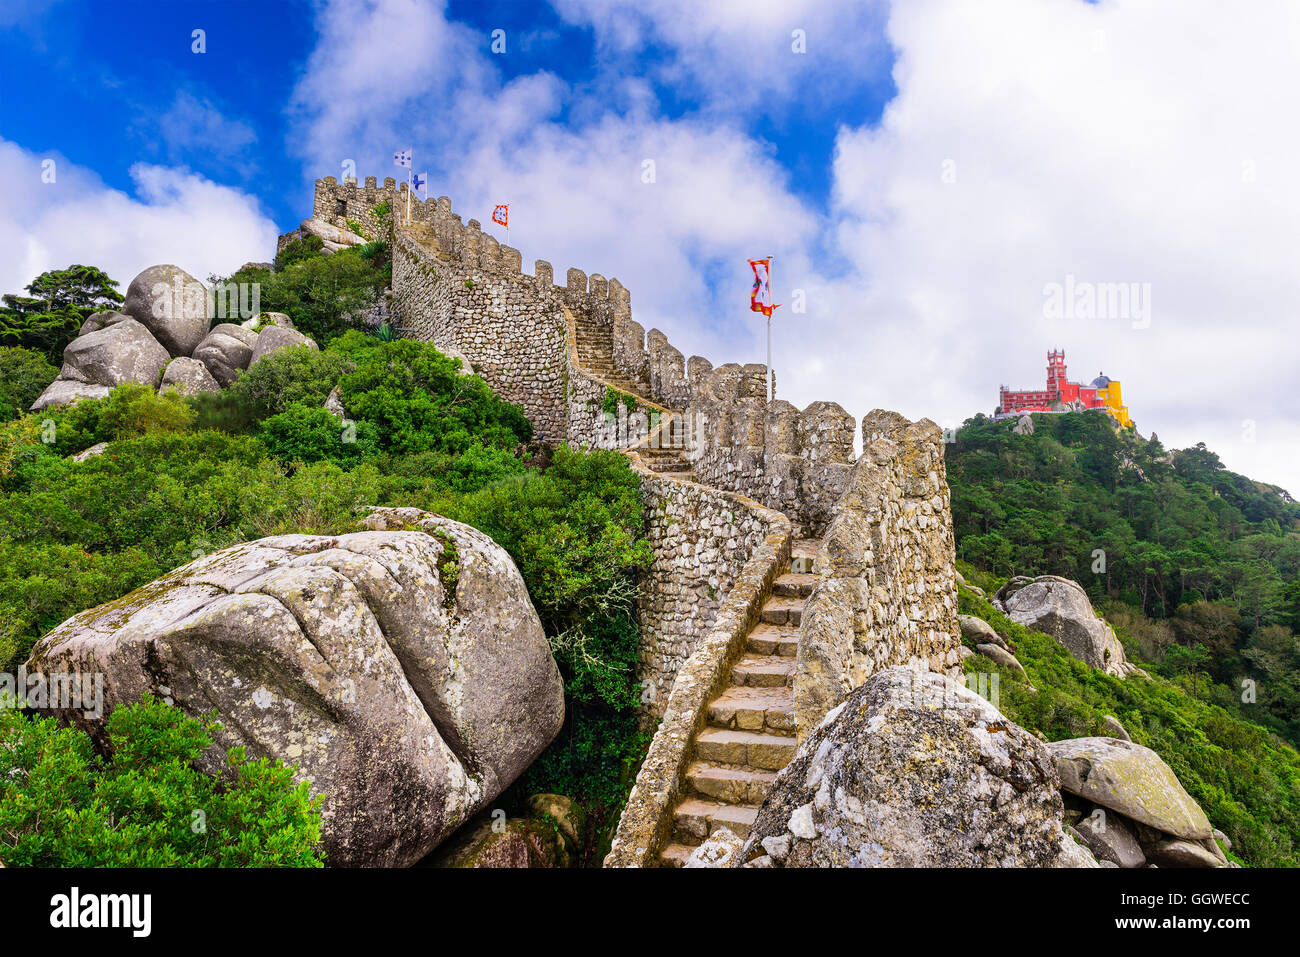 Sintra, Portugal at Castle of the Moors wall with Pena National Palace in the distance. Stock Photo